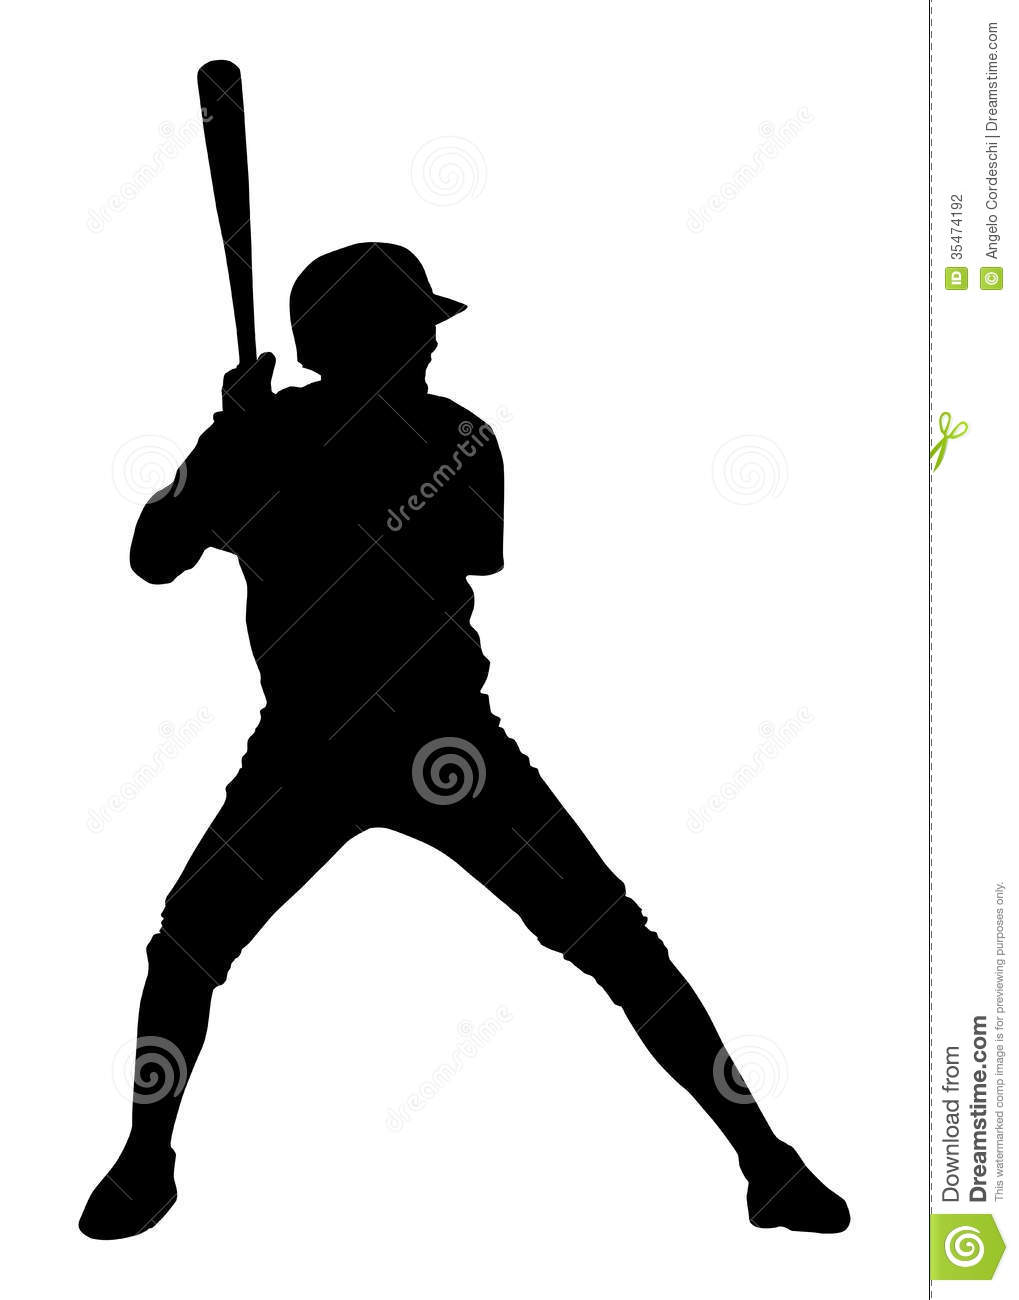 Baseball batter silhouettes Stock Photos and Images 556